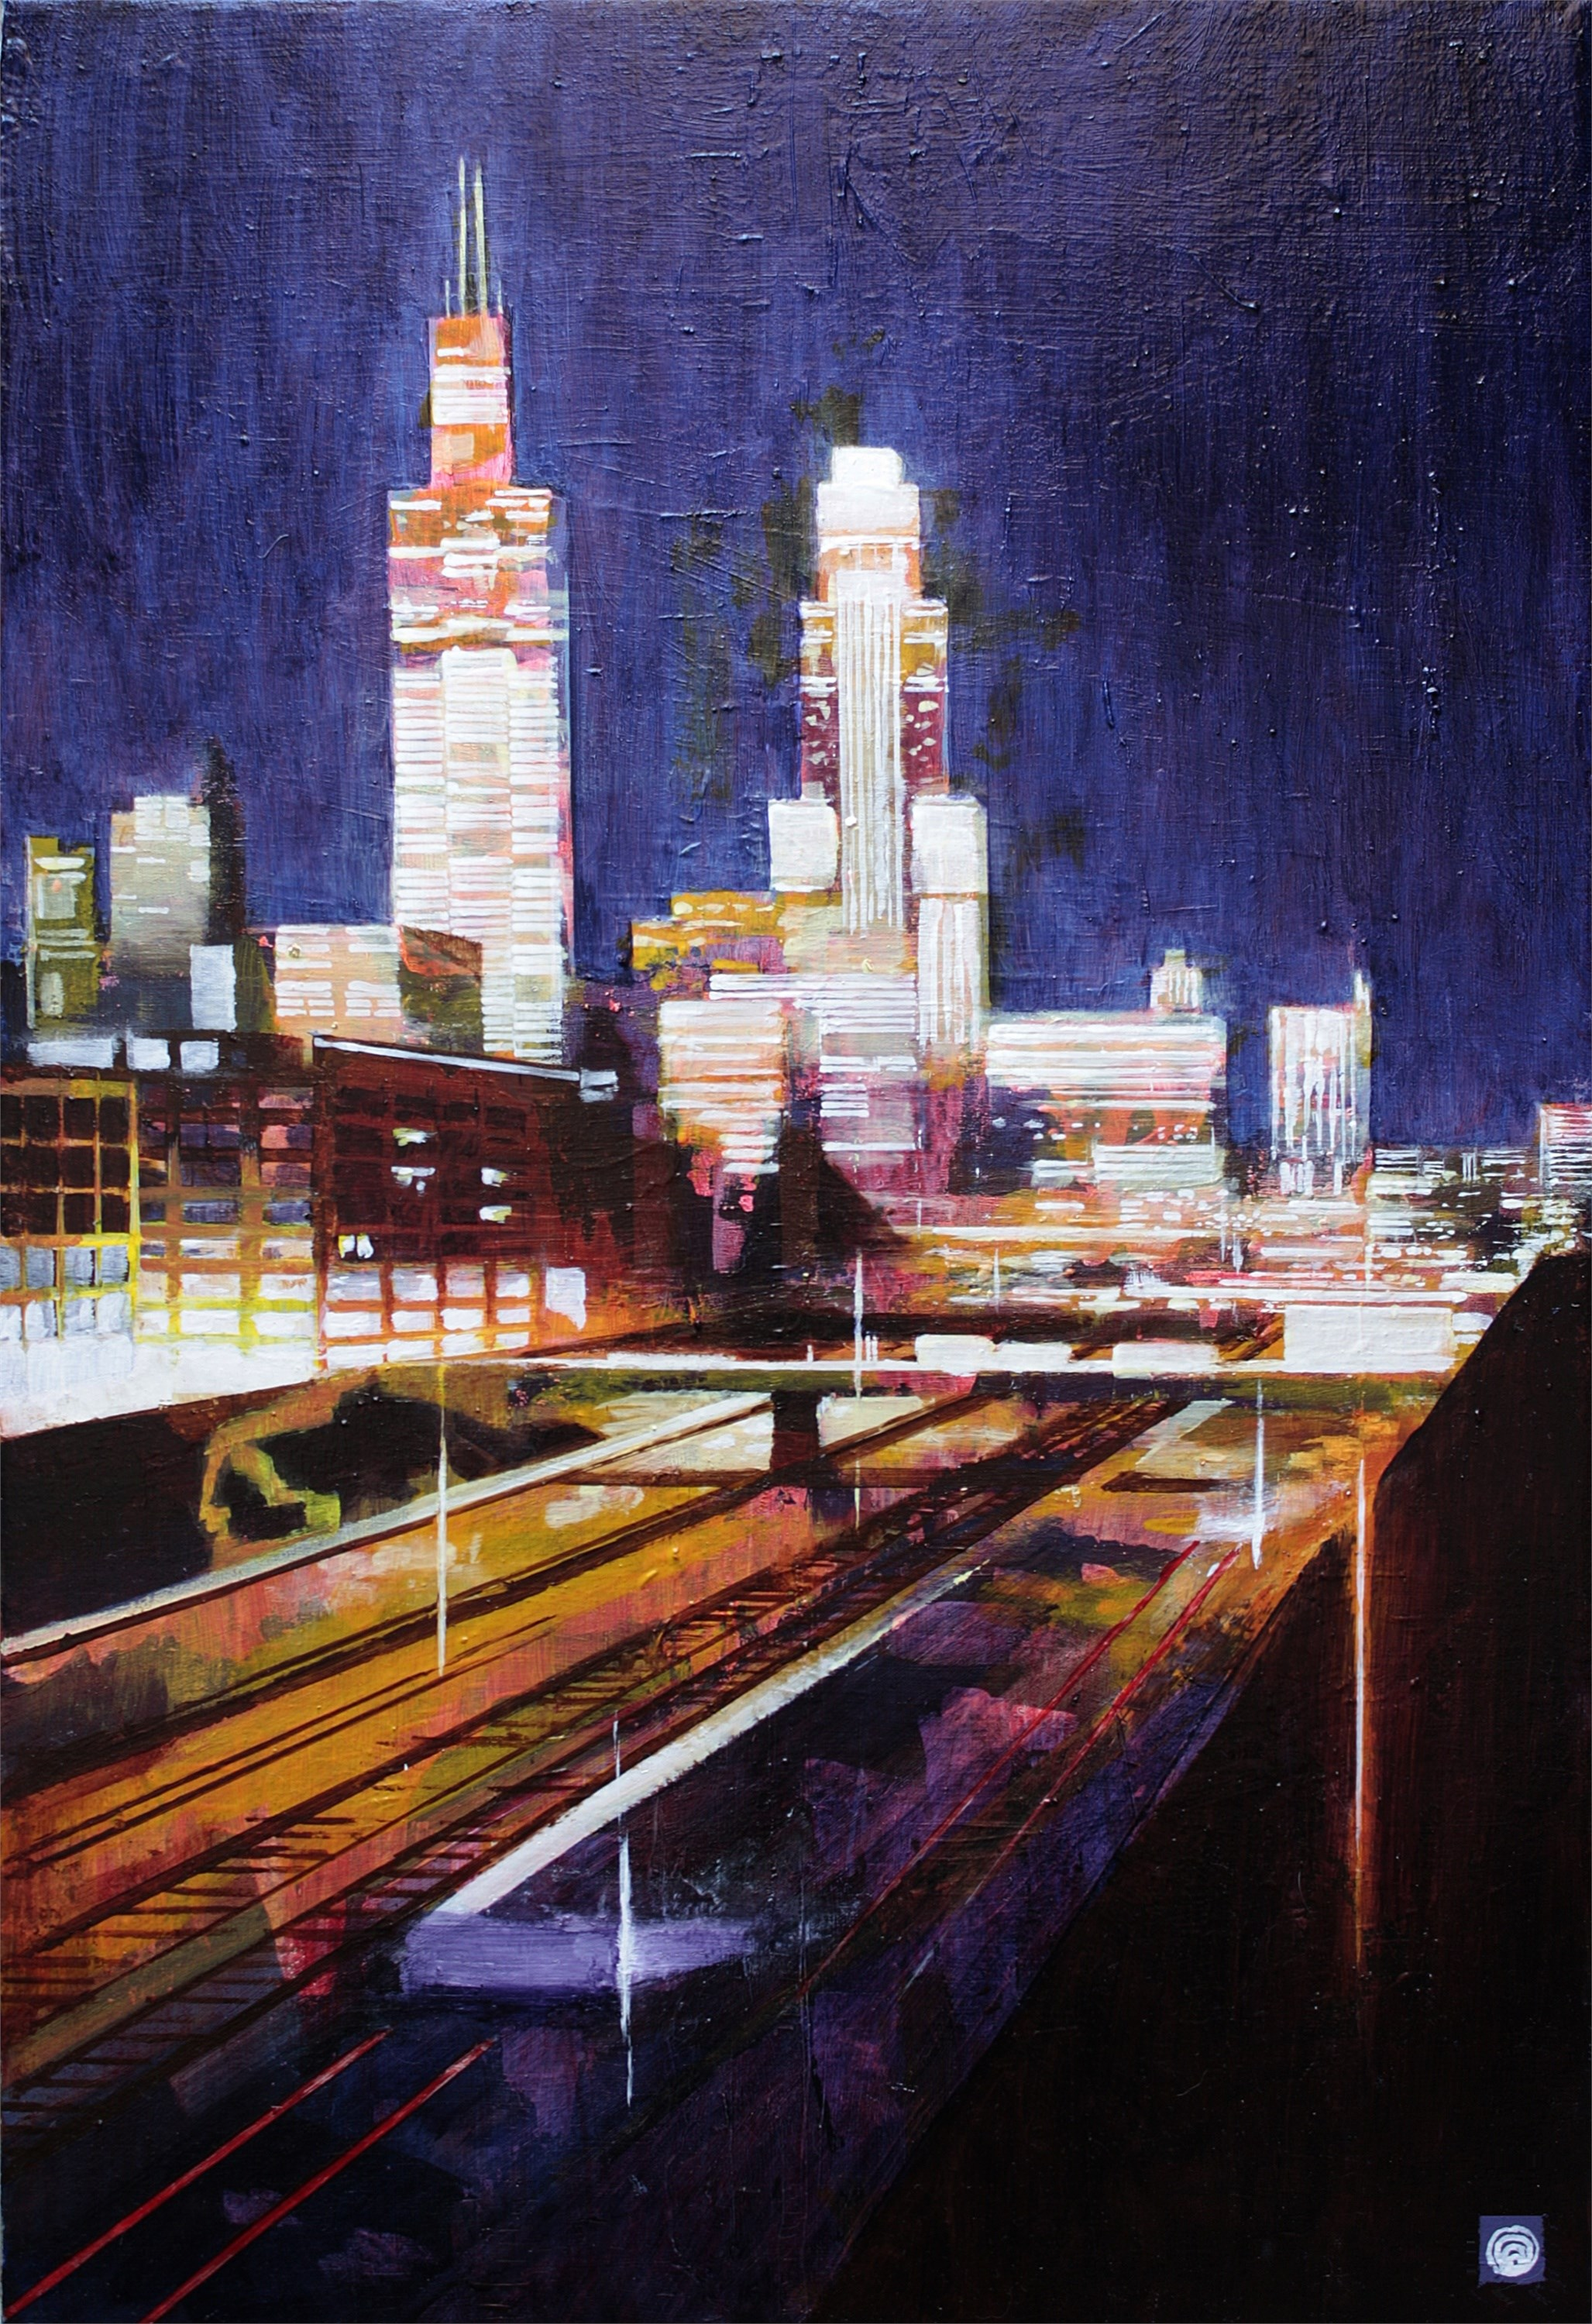 City Lights, original Landscape Oil Painting by Fernando Teixeira